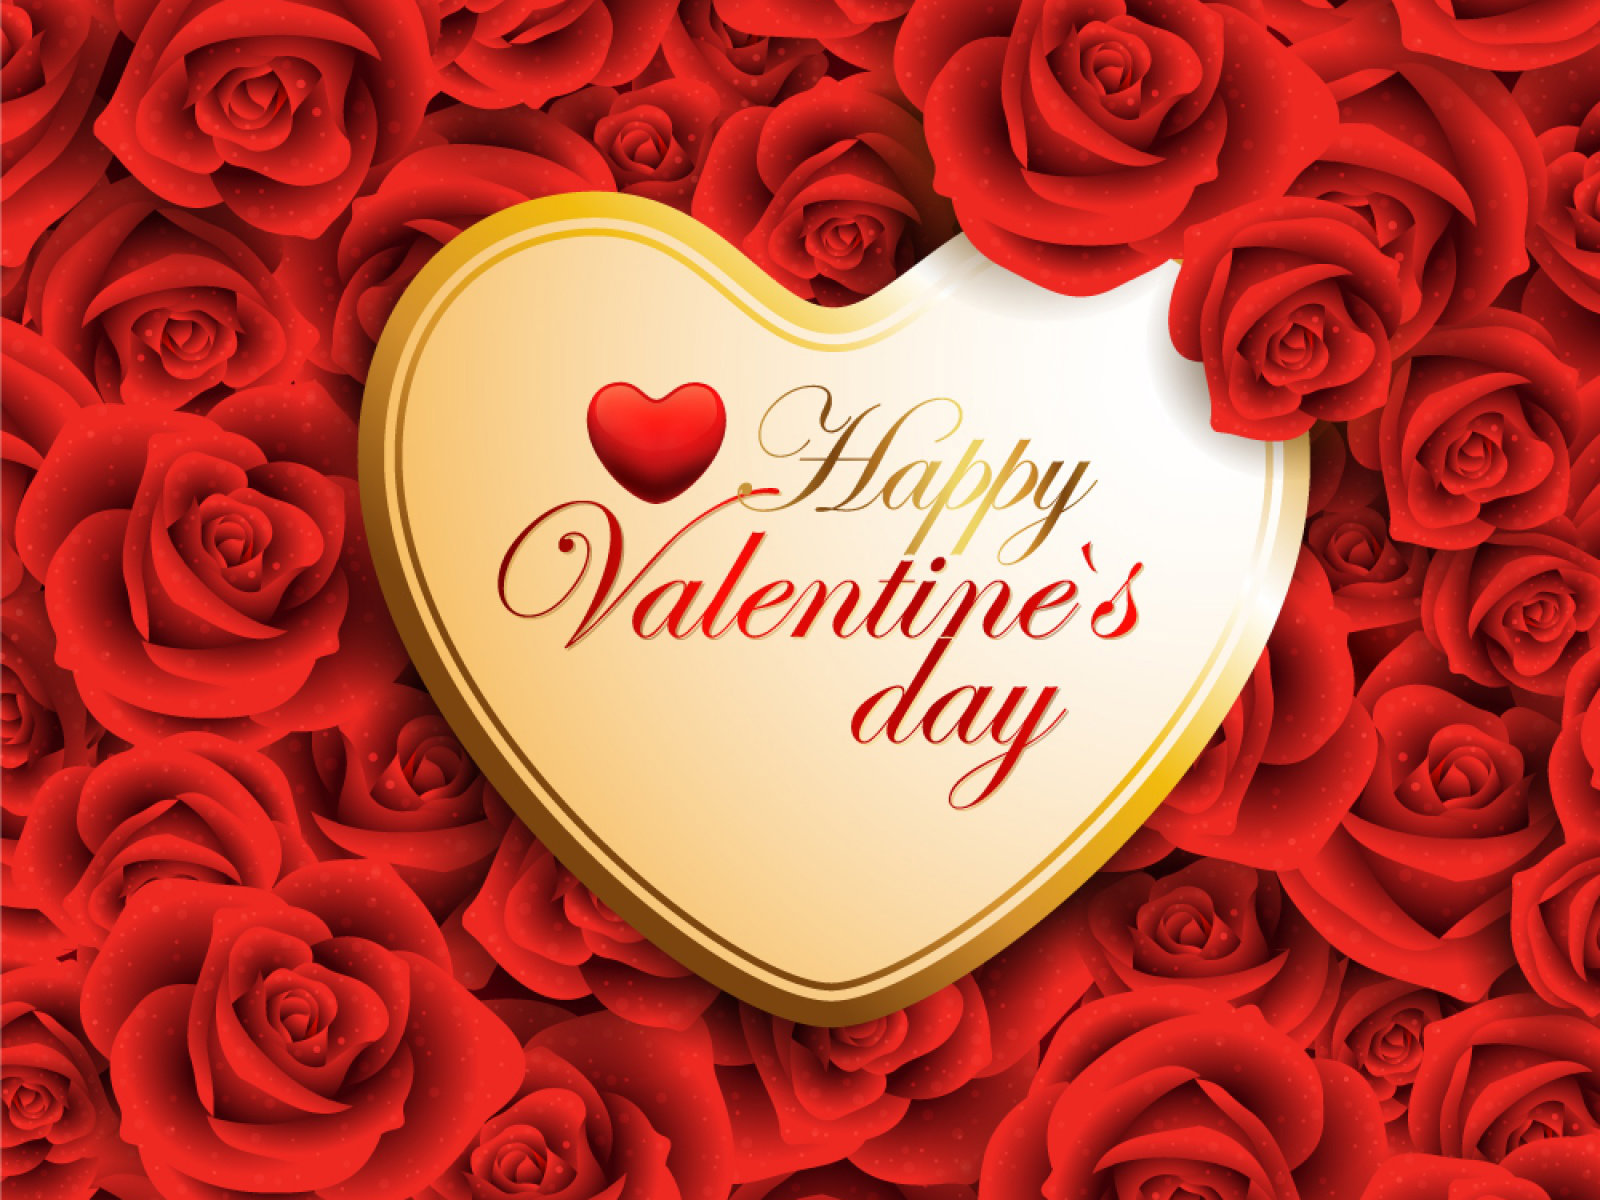 Happy Valentines Day Wallpaper And Background Image